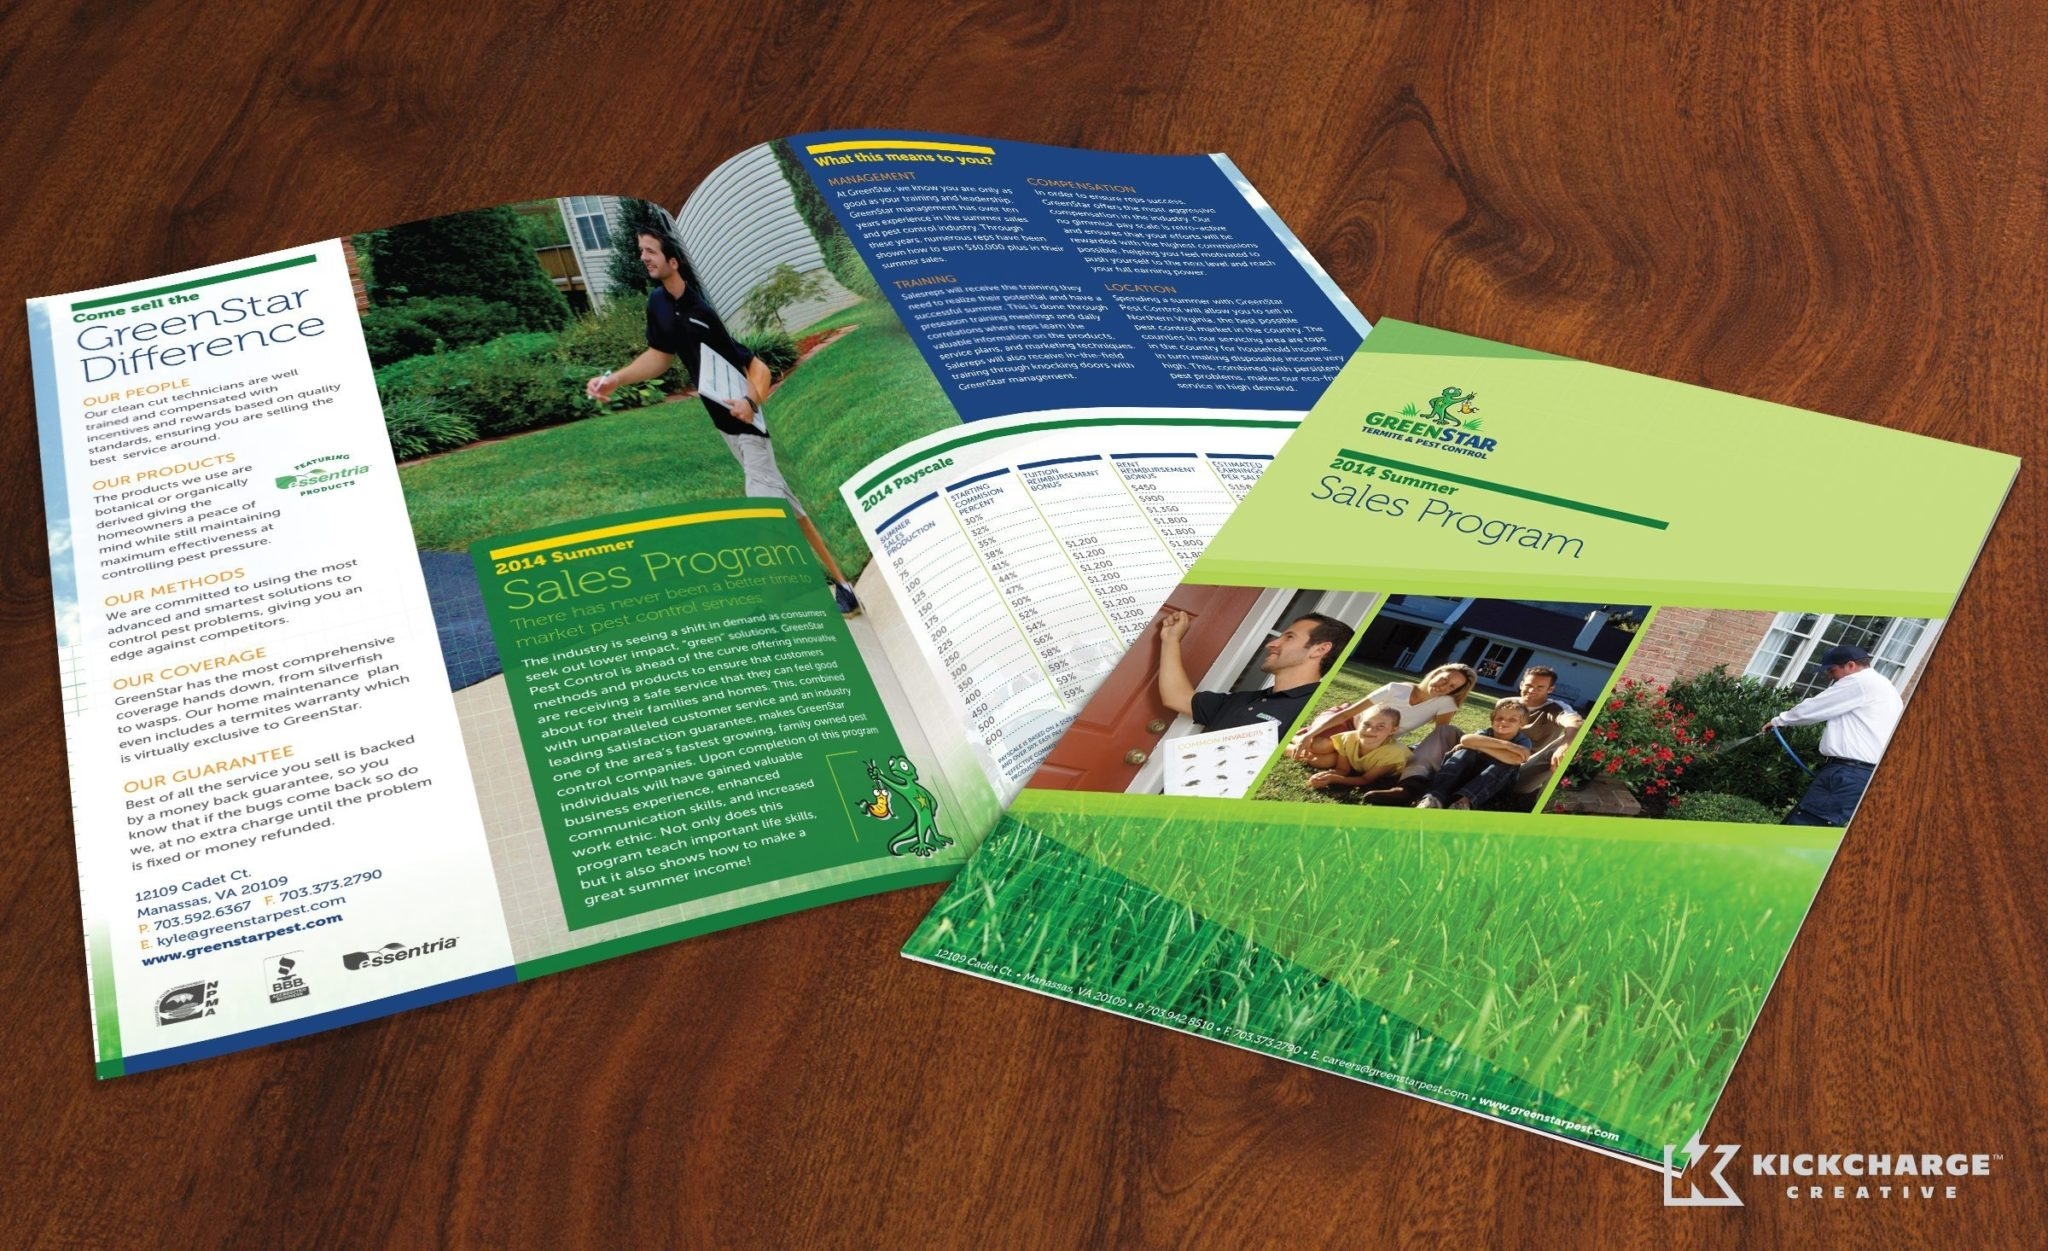 Collateral and brochure design, copywriting and printing for GreenStar Pest Control.